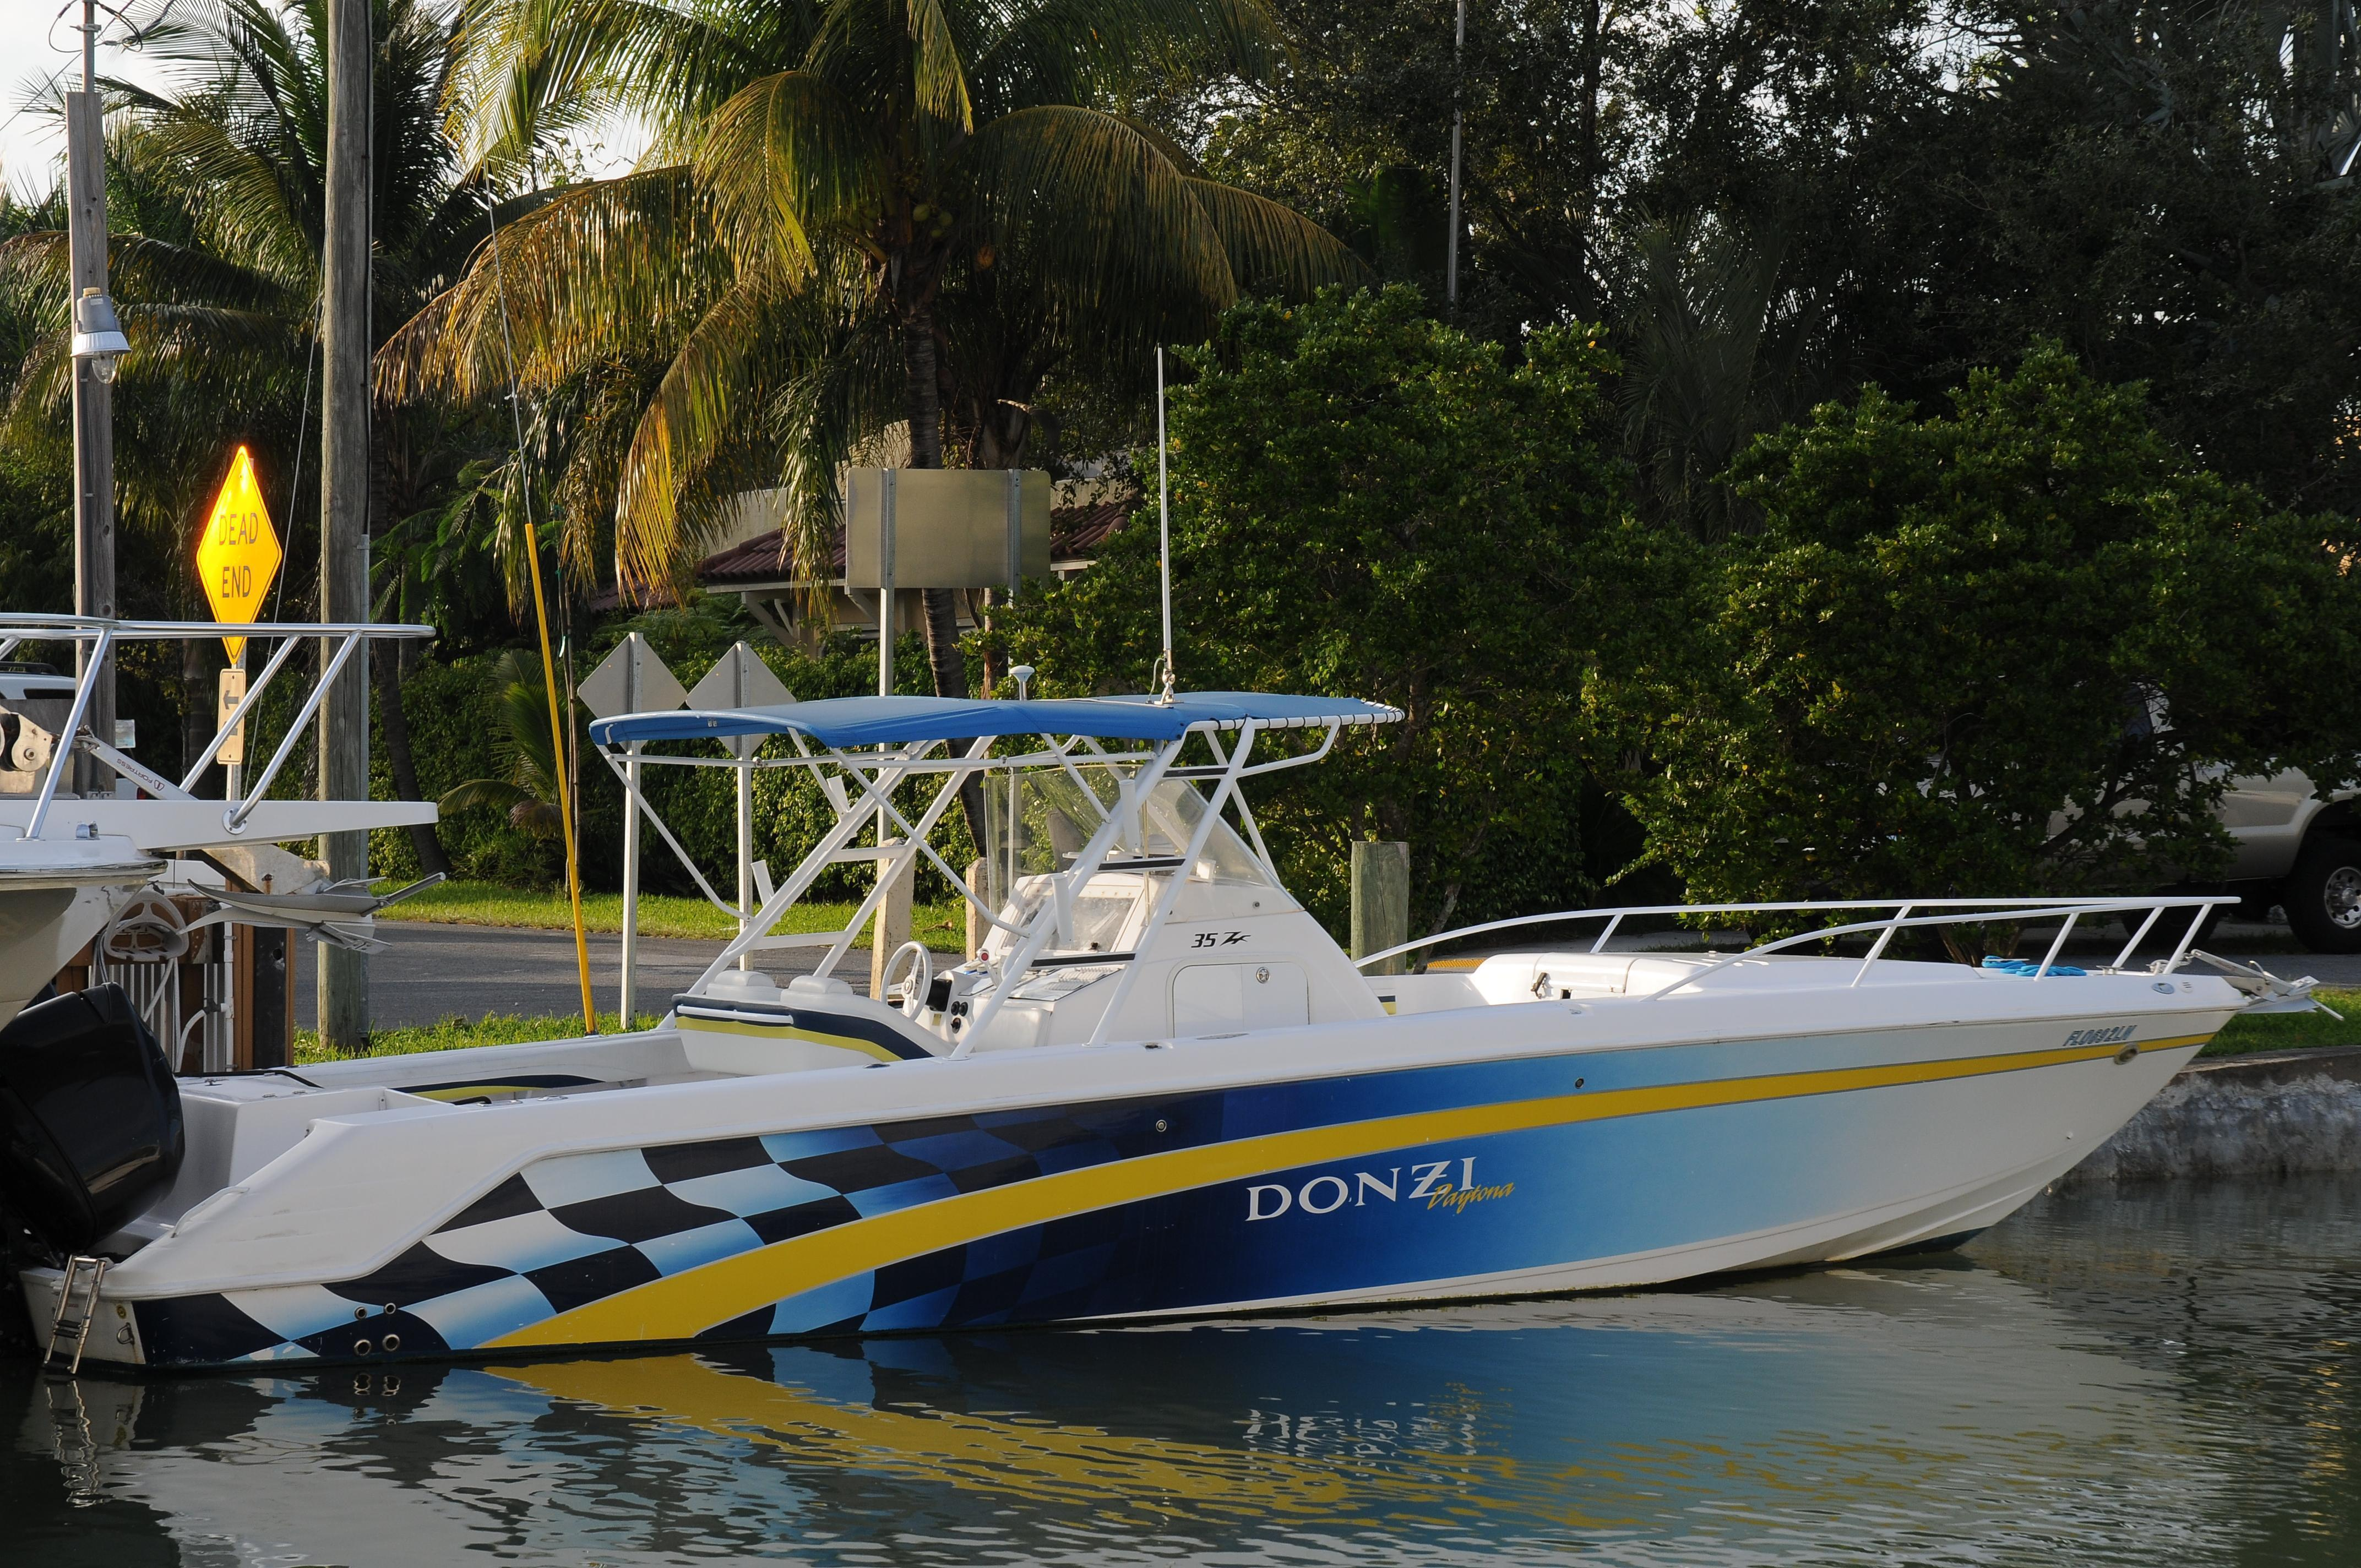 26 Donzi Zf For Sale